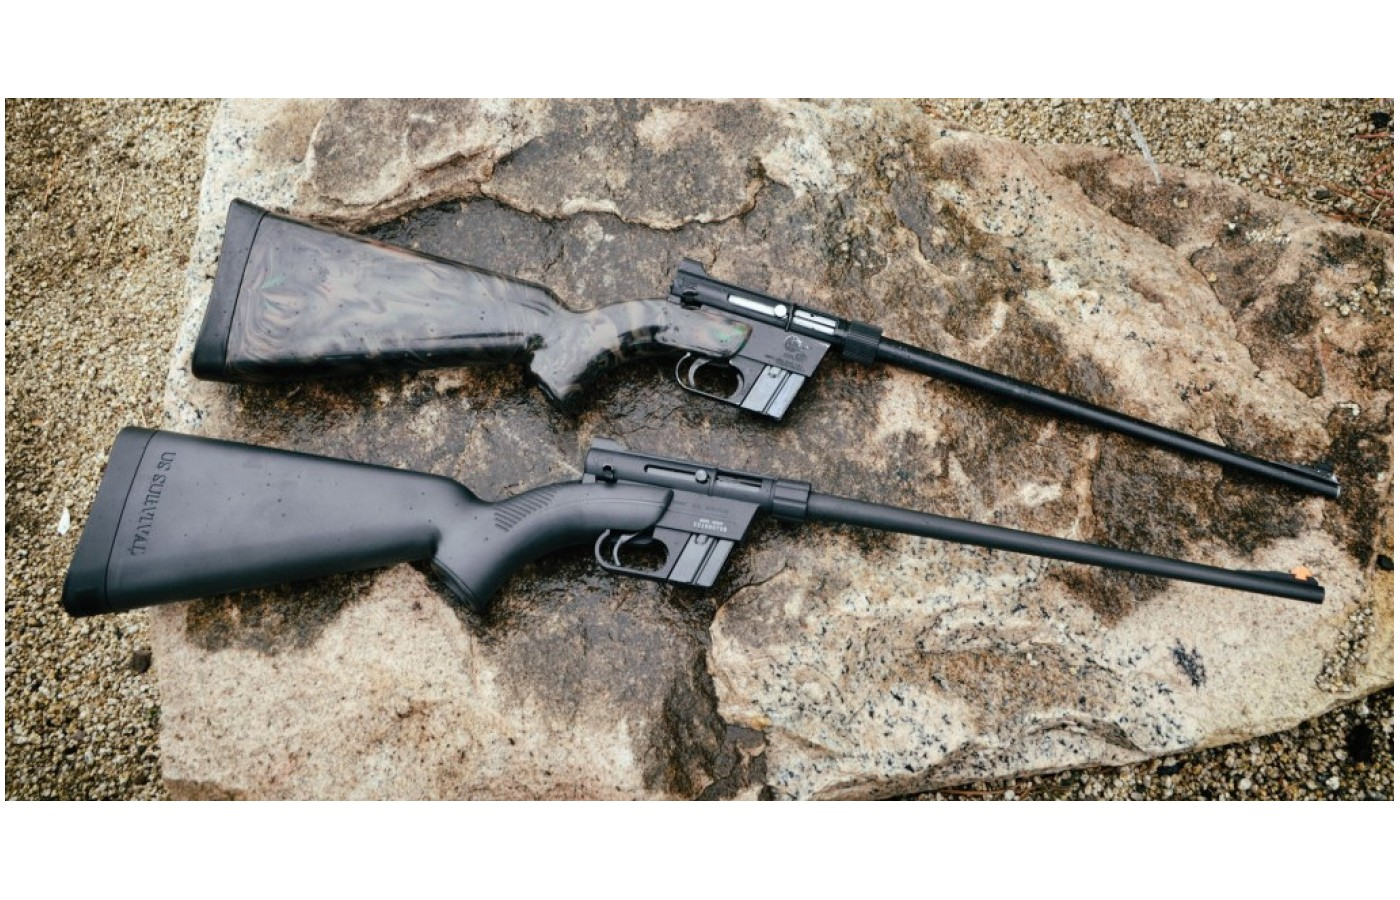 The AR-7 is designed to be used as a get-home or last-ditch bug-out rifle, mostly intended for shooting small game.